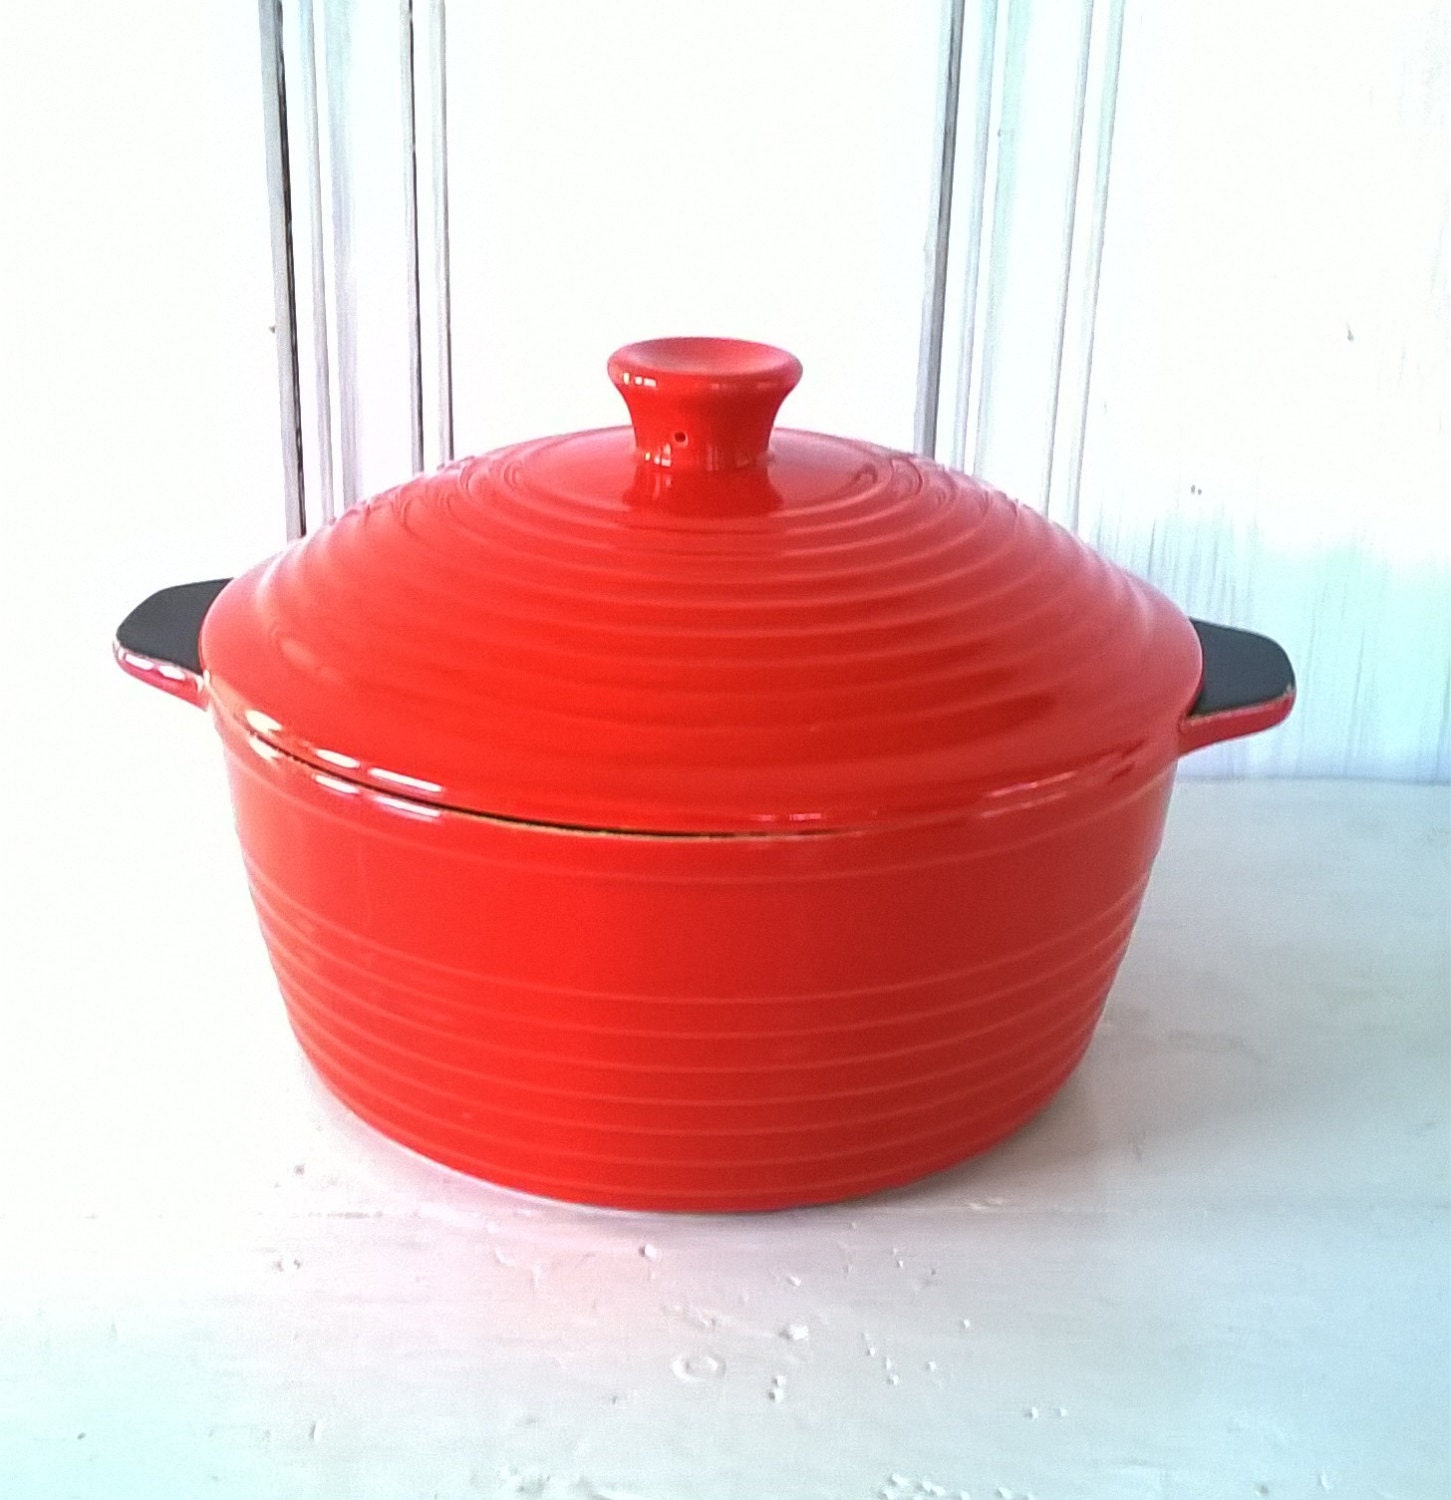 Ruff Hewn Red Crockery Pot 3 Qt Casserole Dish With Lid